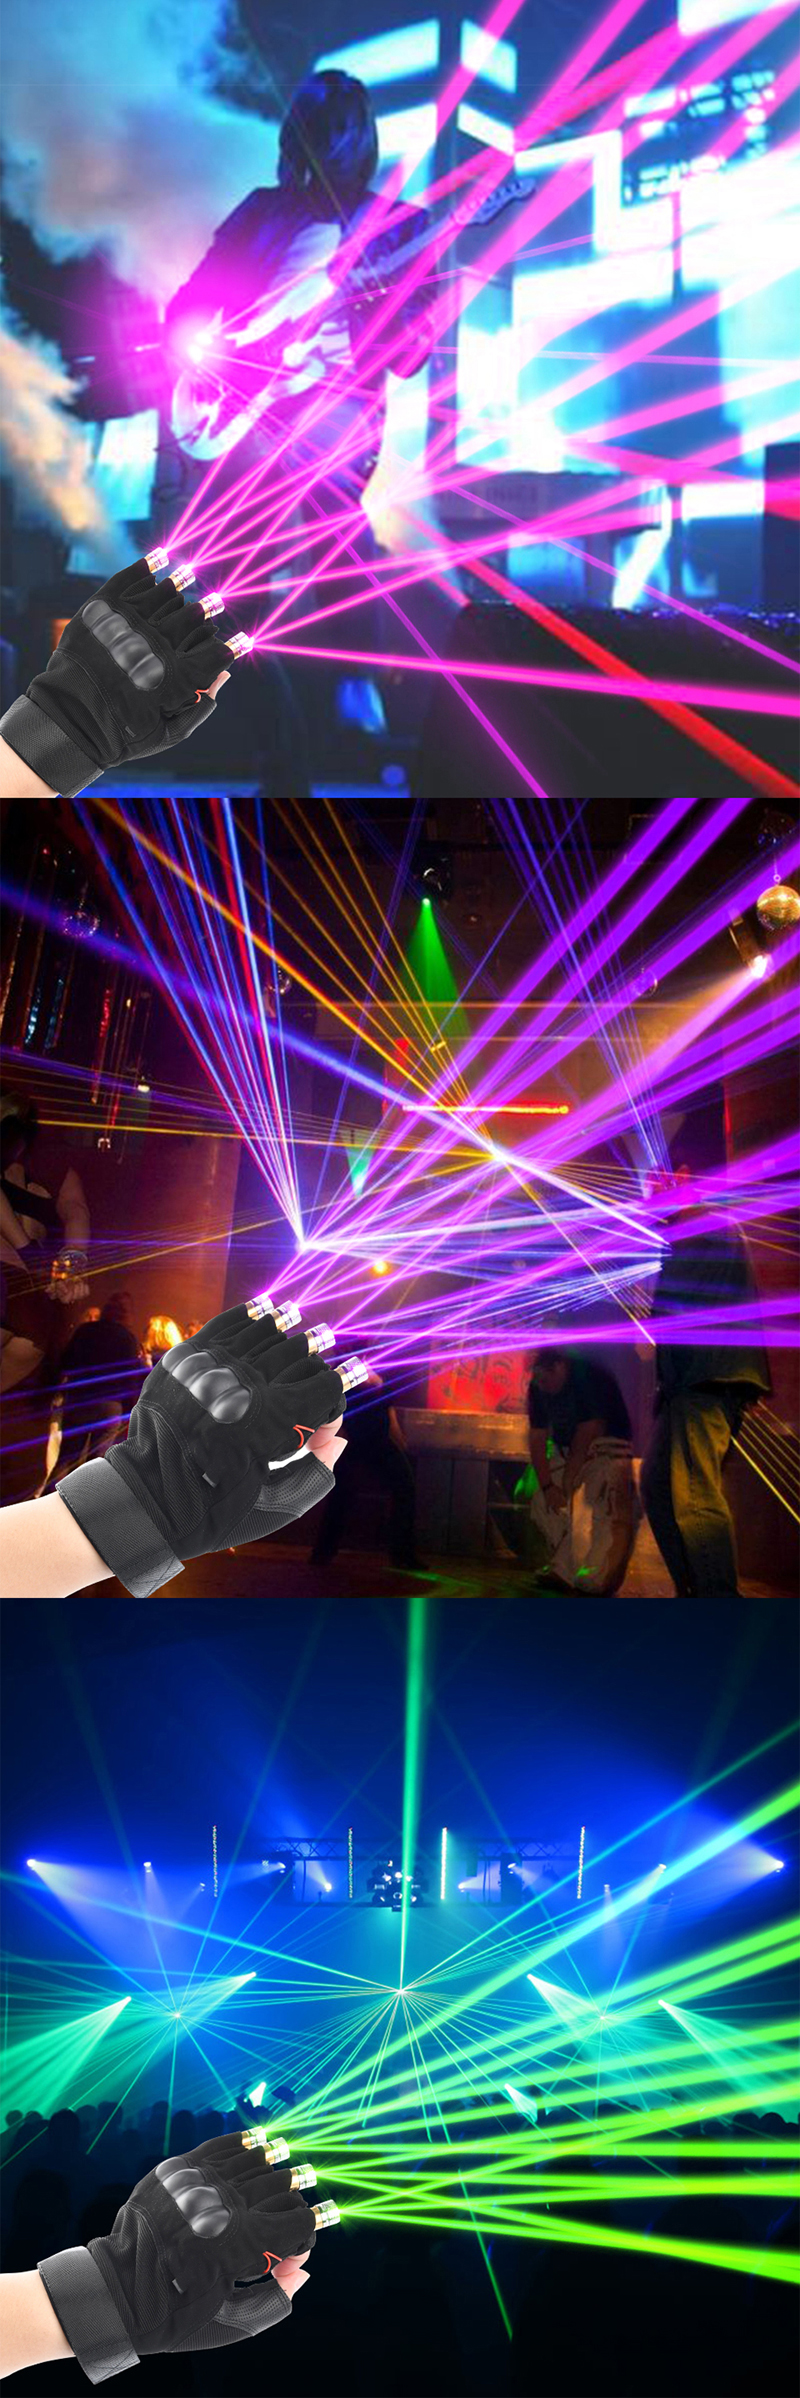 Cool Finger - Laser Gloves - Flashlight - for Party - Concert - Clubbing - Wedding - Birthday - Party - Outdoor Night Activities(19)